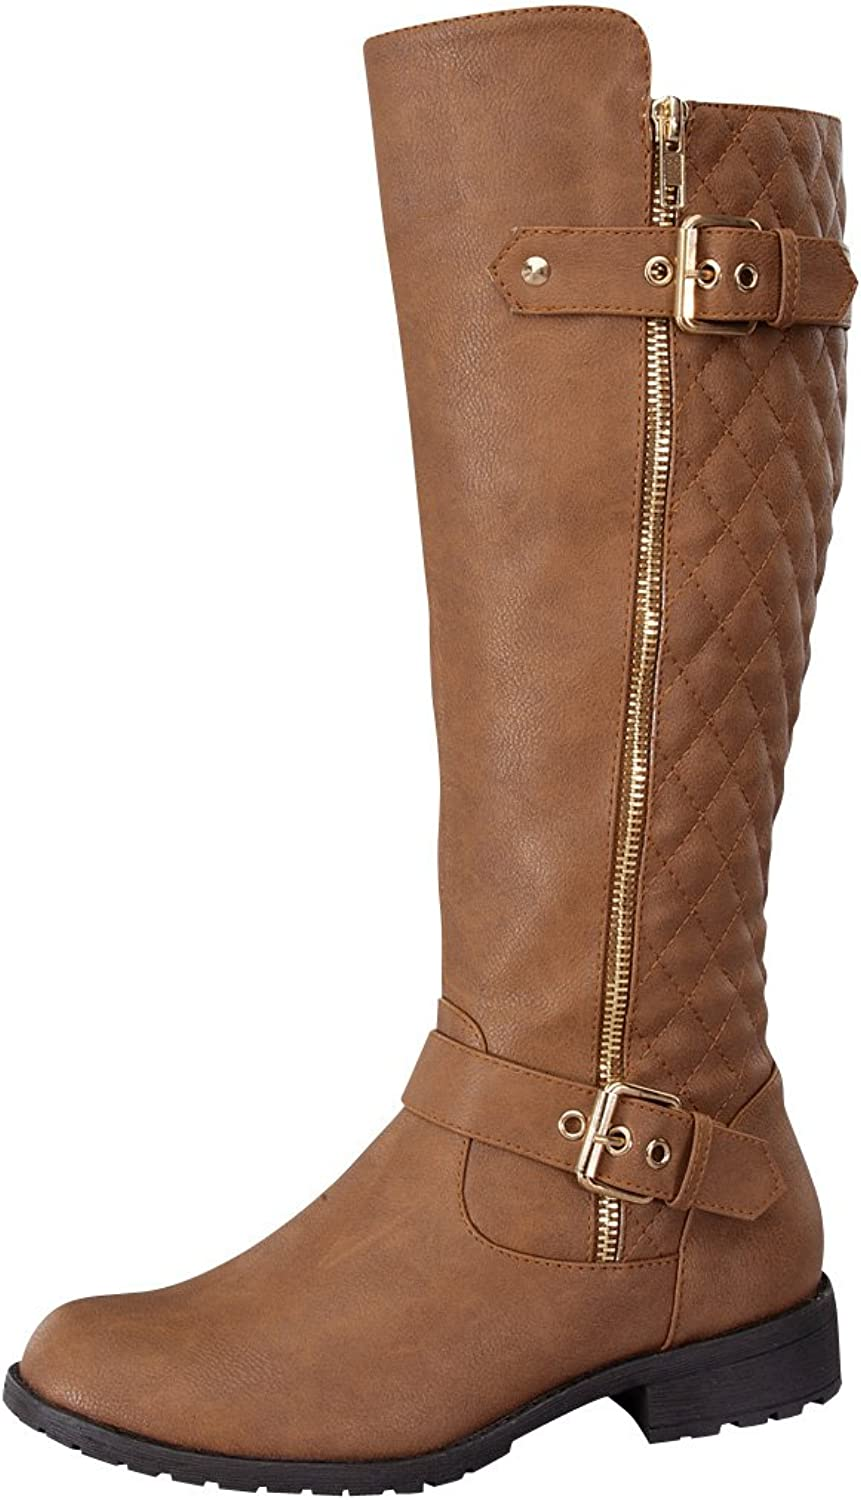 Top Moda Women's Bally-32 Knee High Quilted Faux Leather Boot